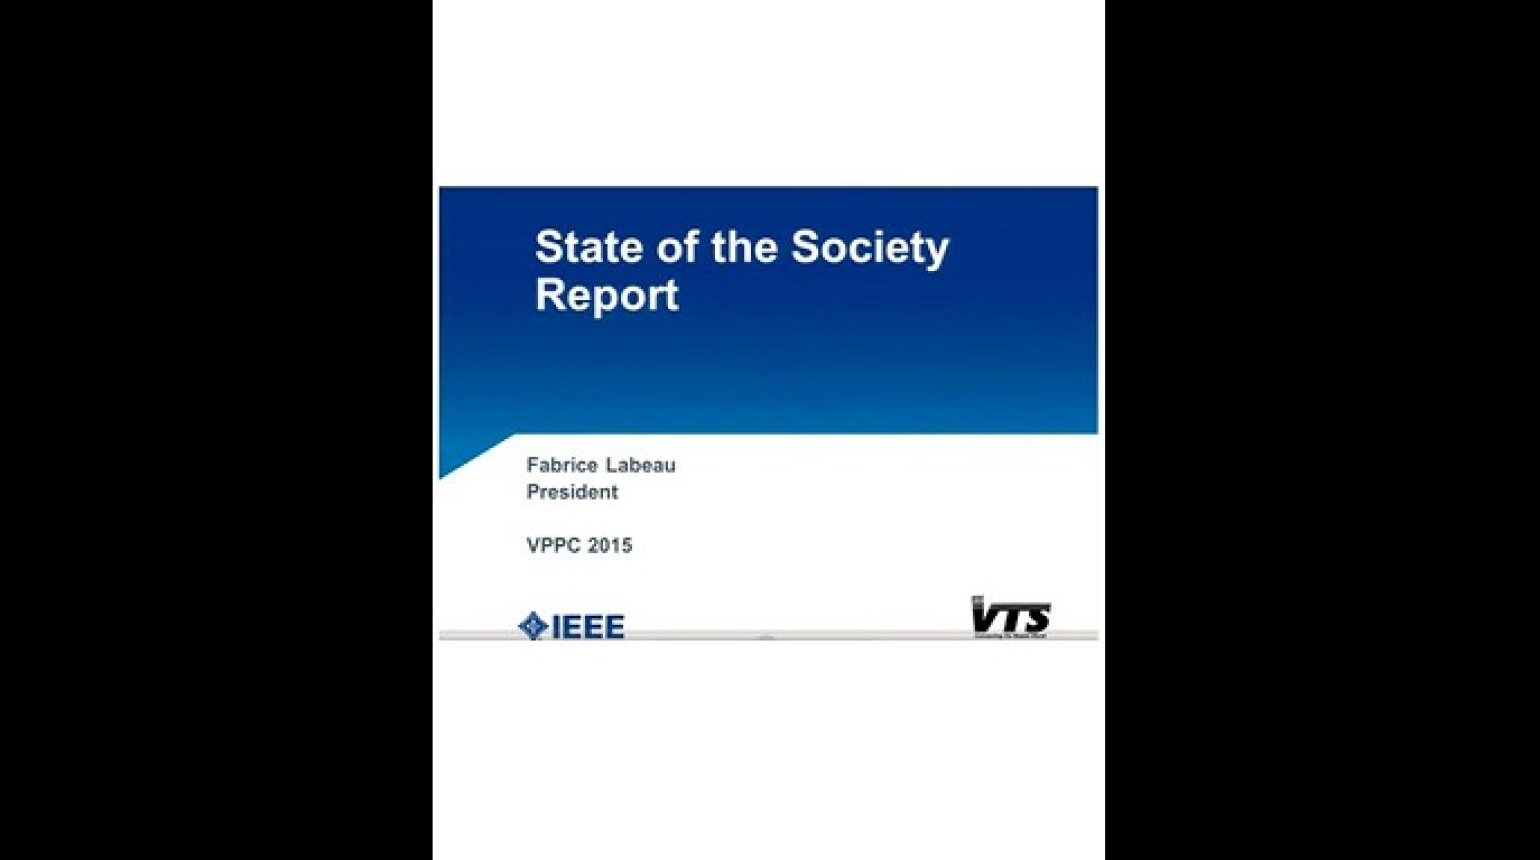 Video - State of the Society Report